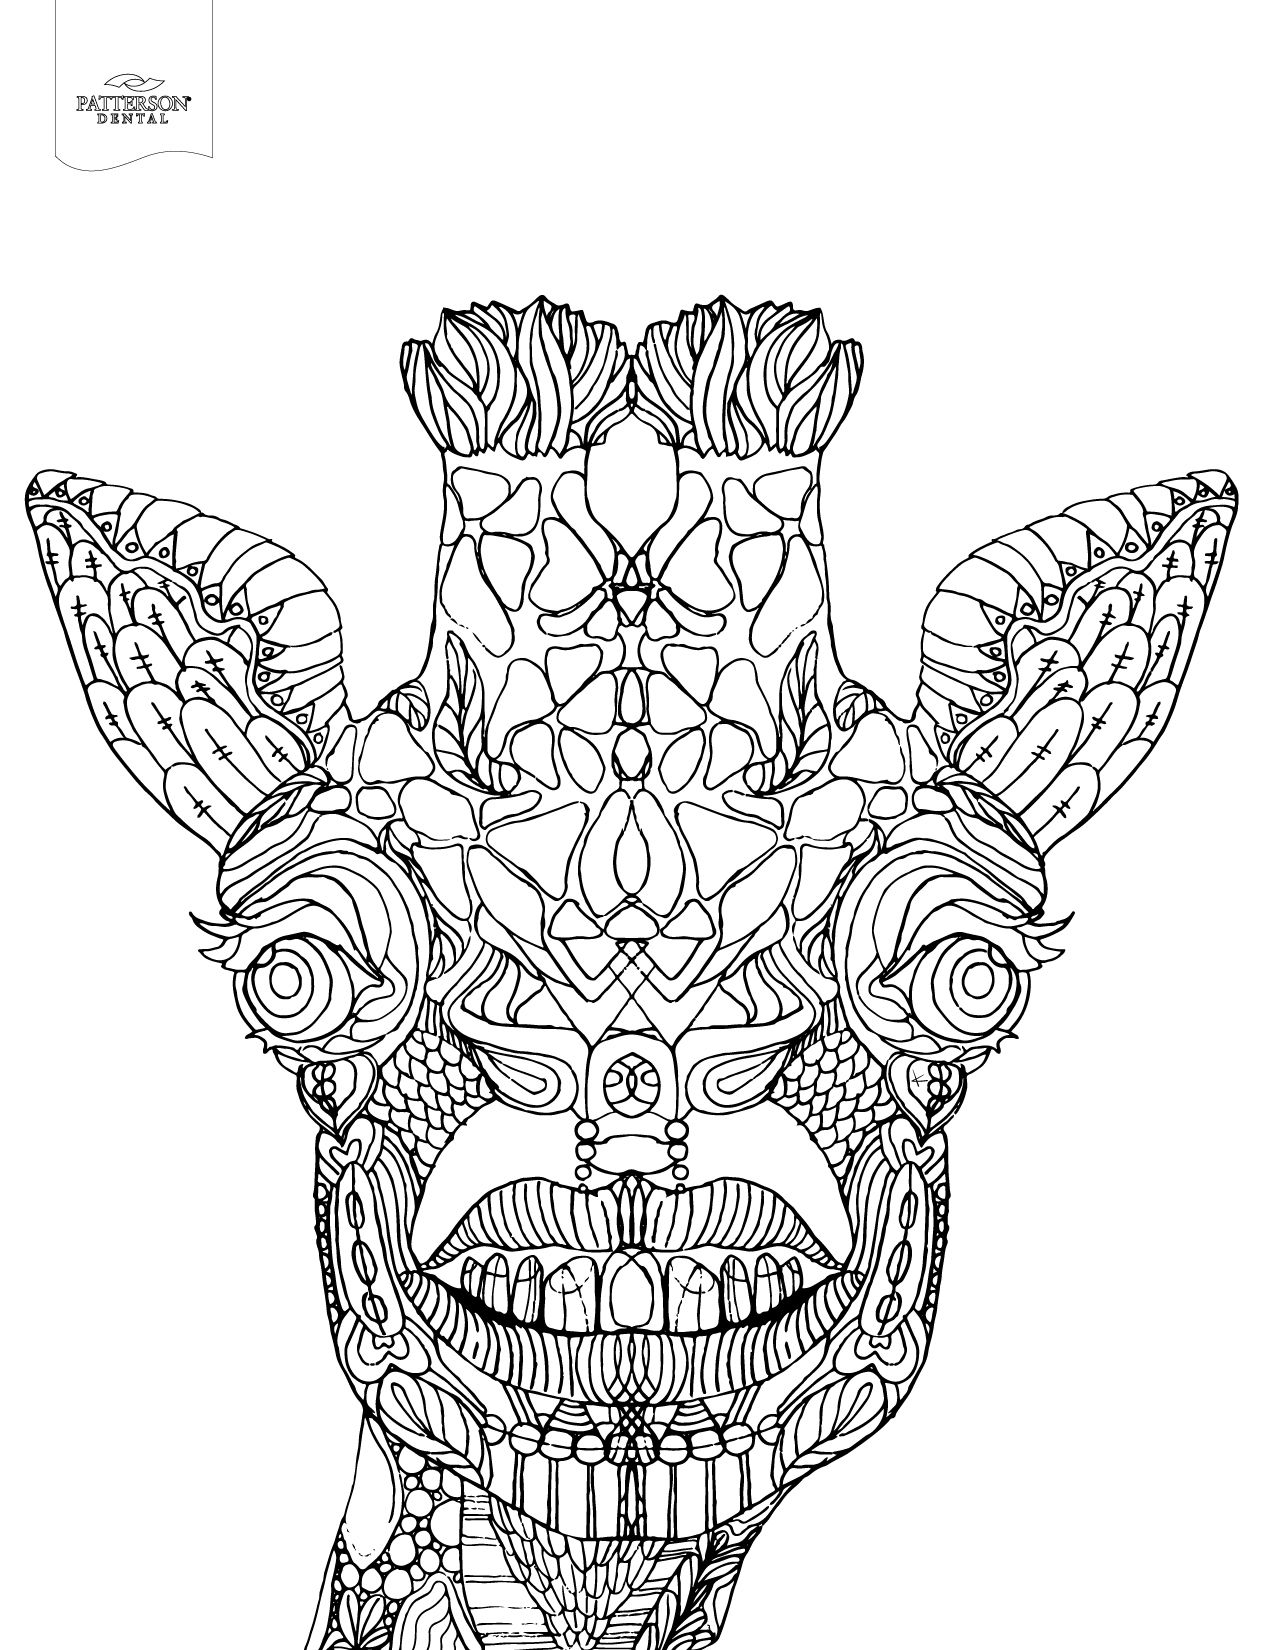 10 Toothy Adult Coloring Pages [Printable | Giraffe ...